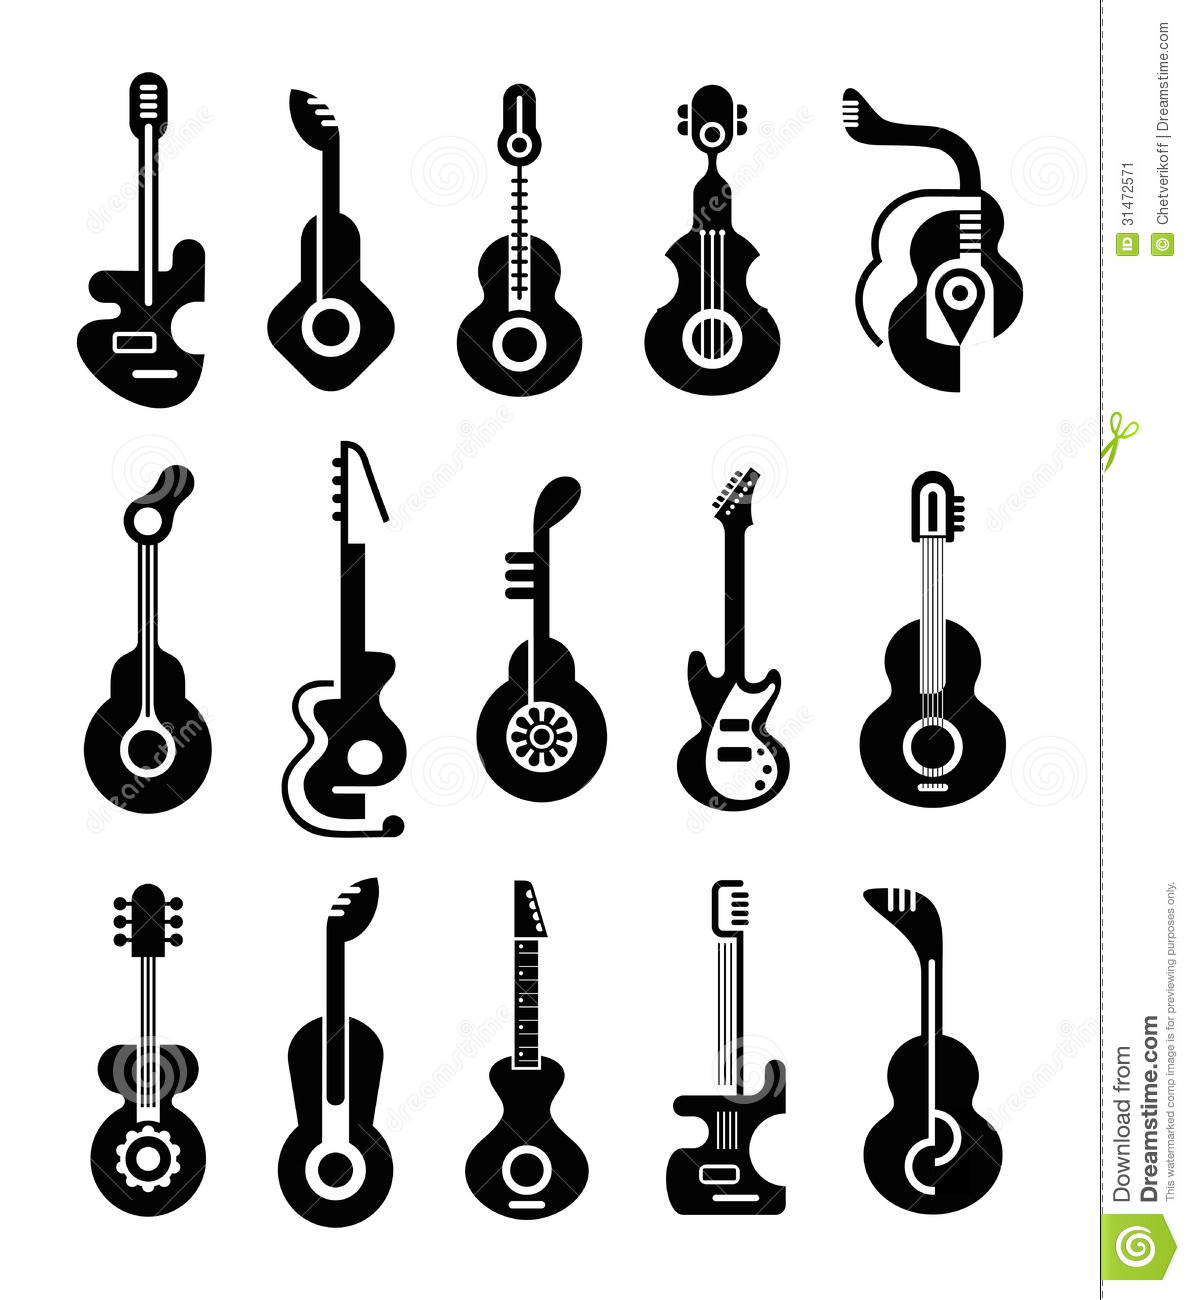 Guitar Icons stock vector. Illustration of electric, icon